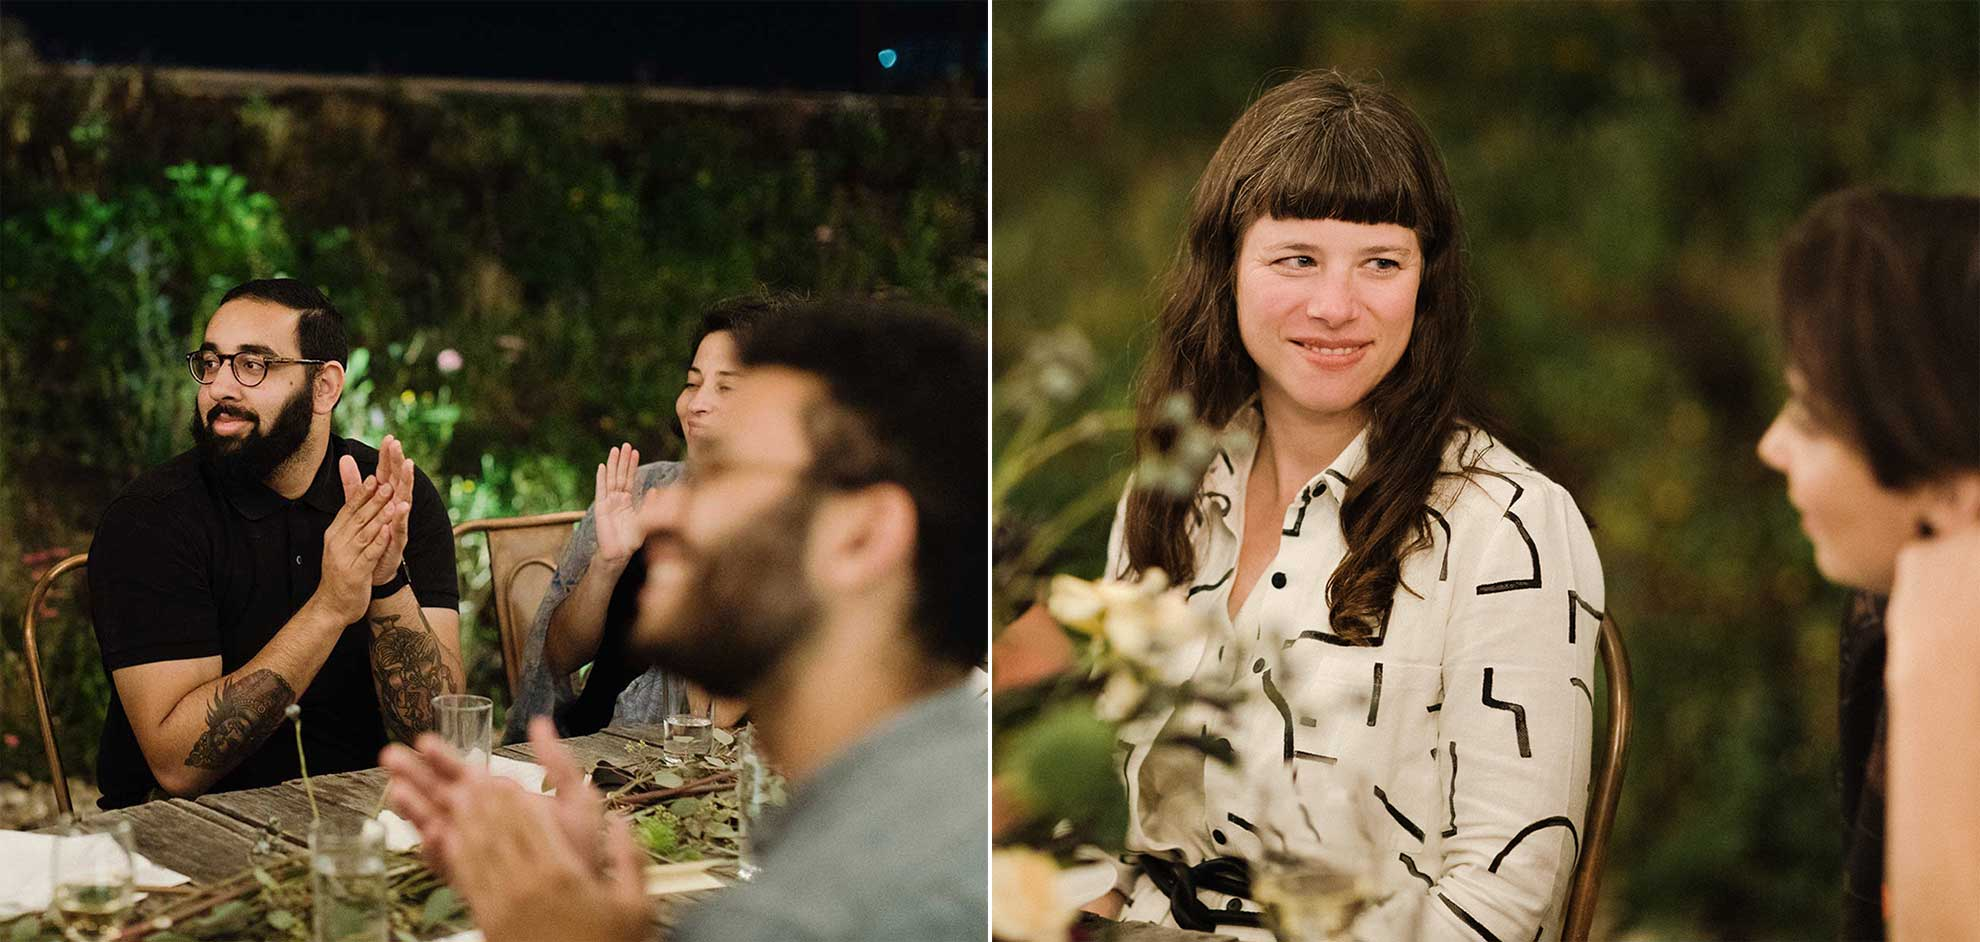 On the right, people seated at dinner, clapping for an unseen speaker. On the right, two women having an intimate conversation.